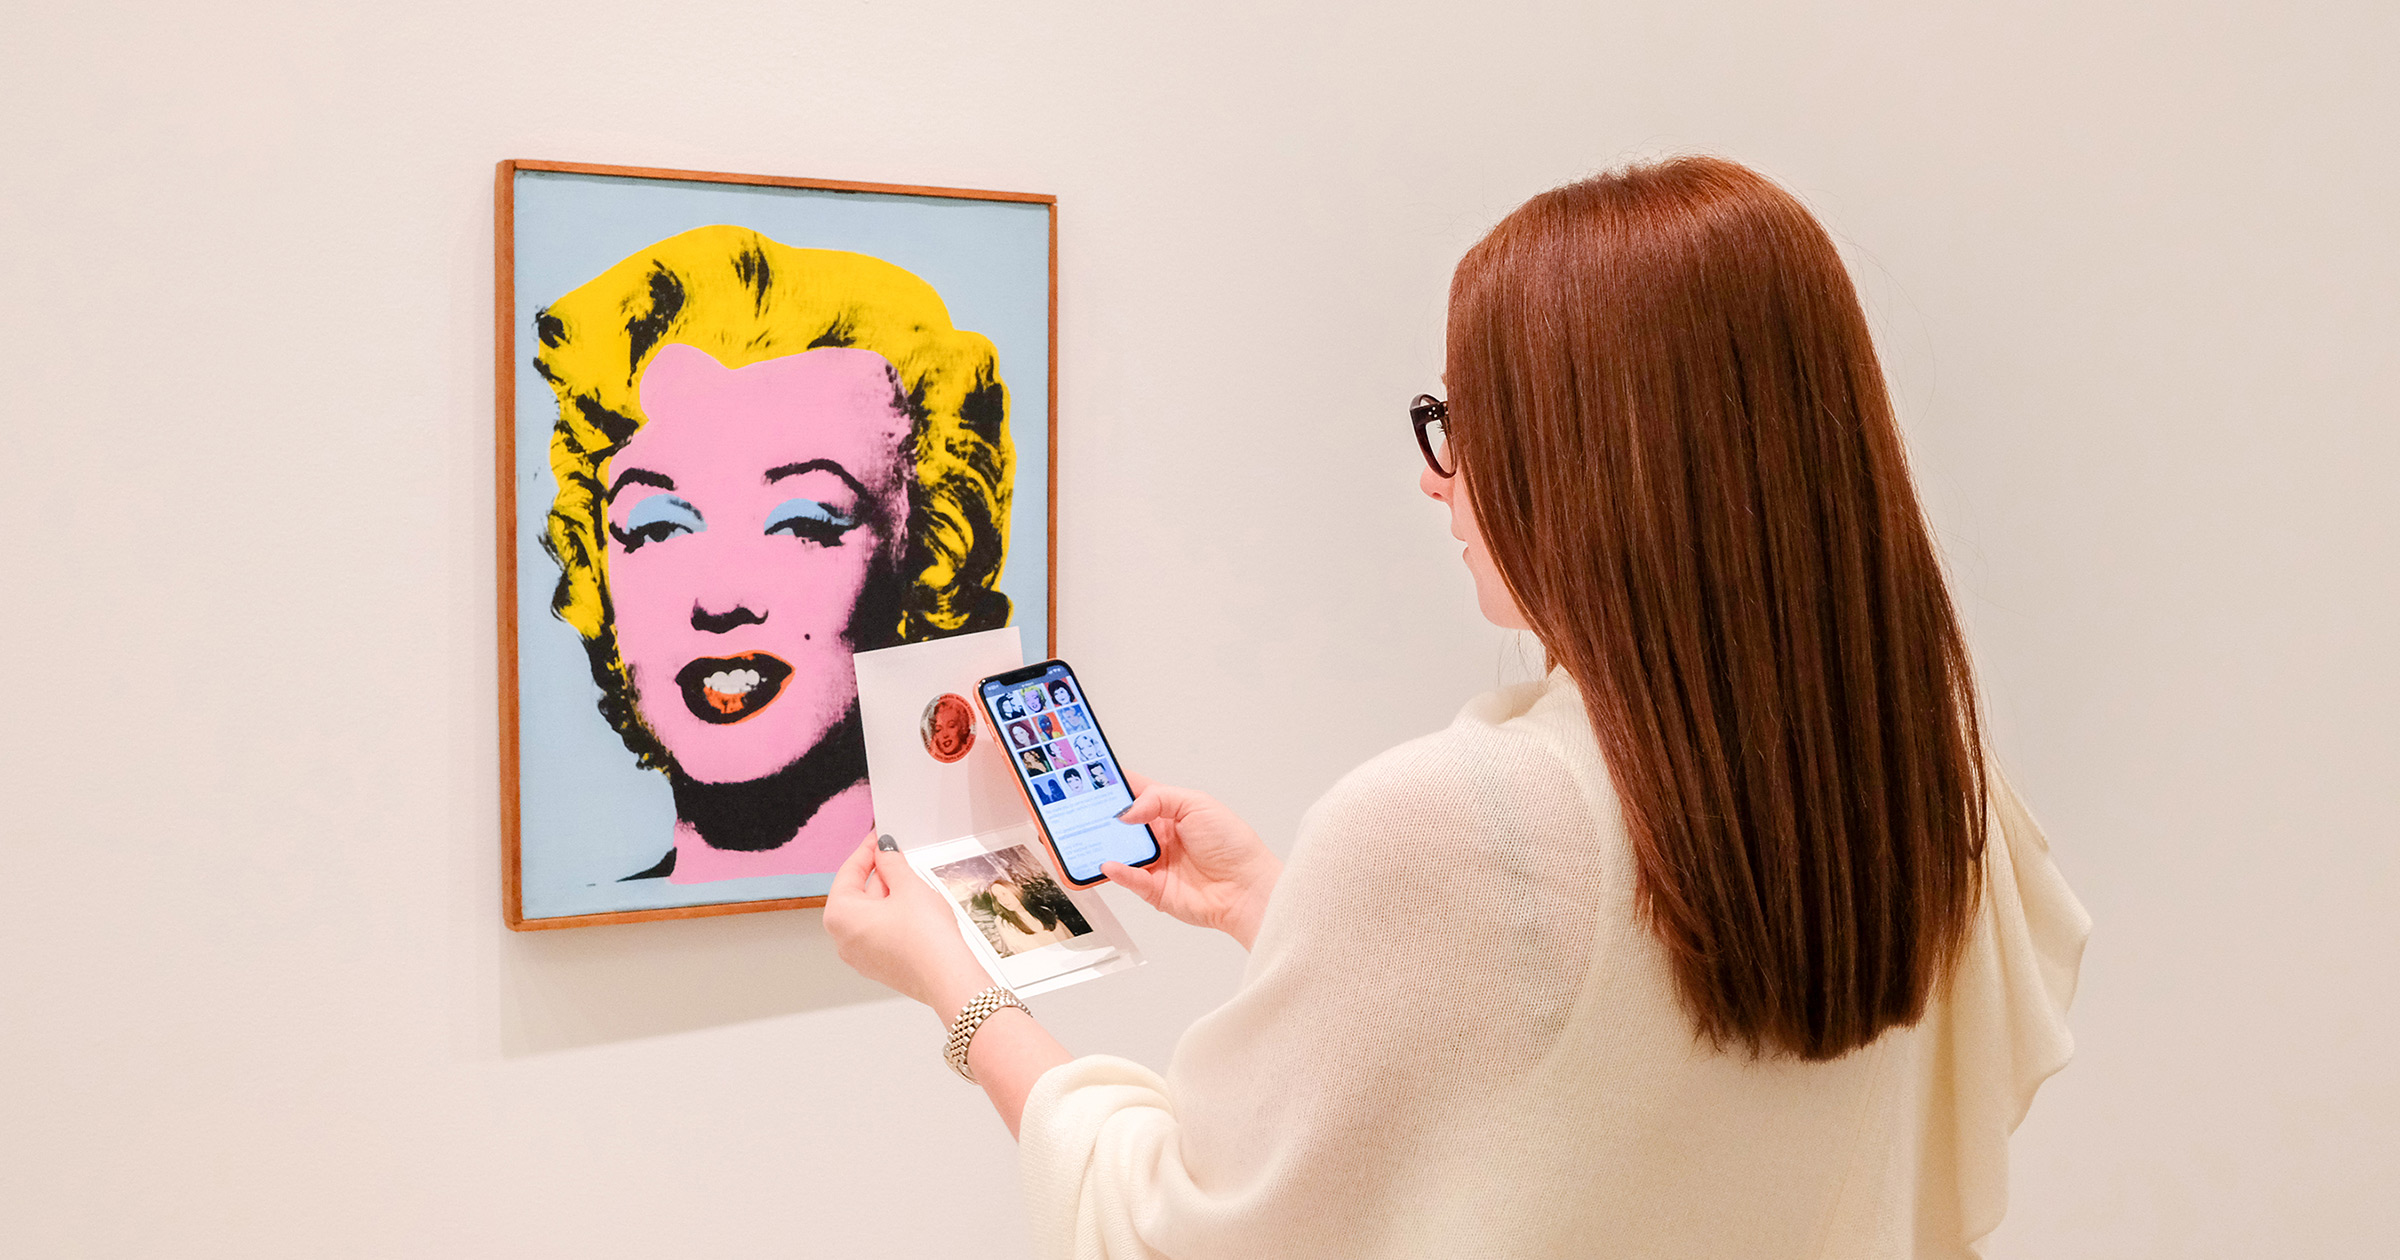 ​Blue Bite powers Warhol Women, a new exhibition at Lévy Gorvy in New York that presents Andy Warhol's portraits of women from the early 1960s through the 1980s, inviting the viewer to ponder the artist's complex and often contradictory relationship to myths and ideals of femininity, beauty and power.